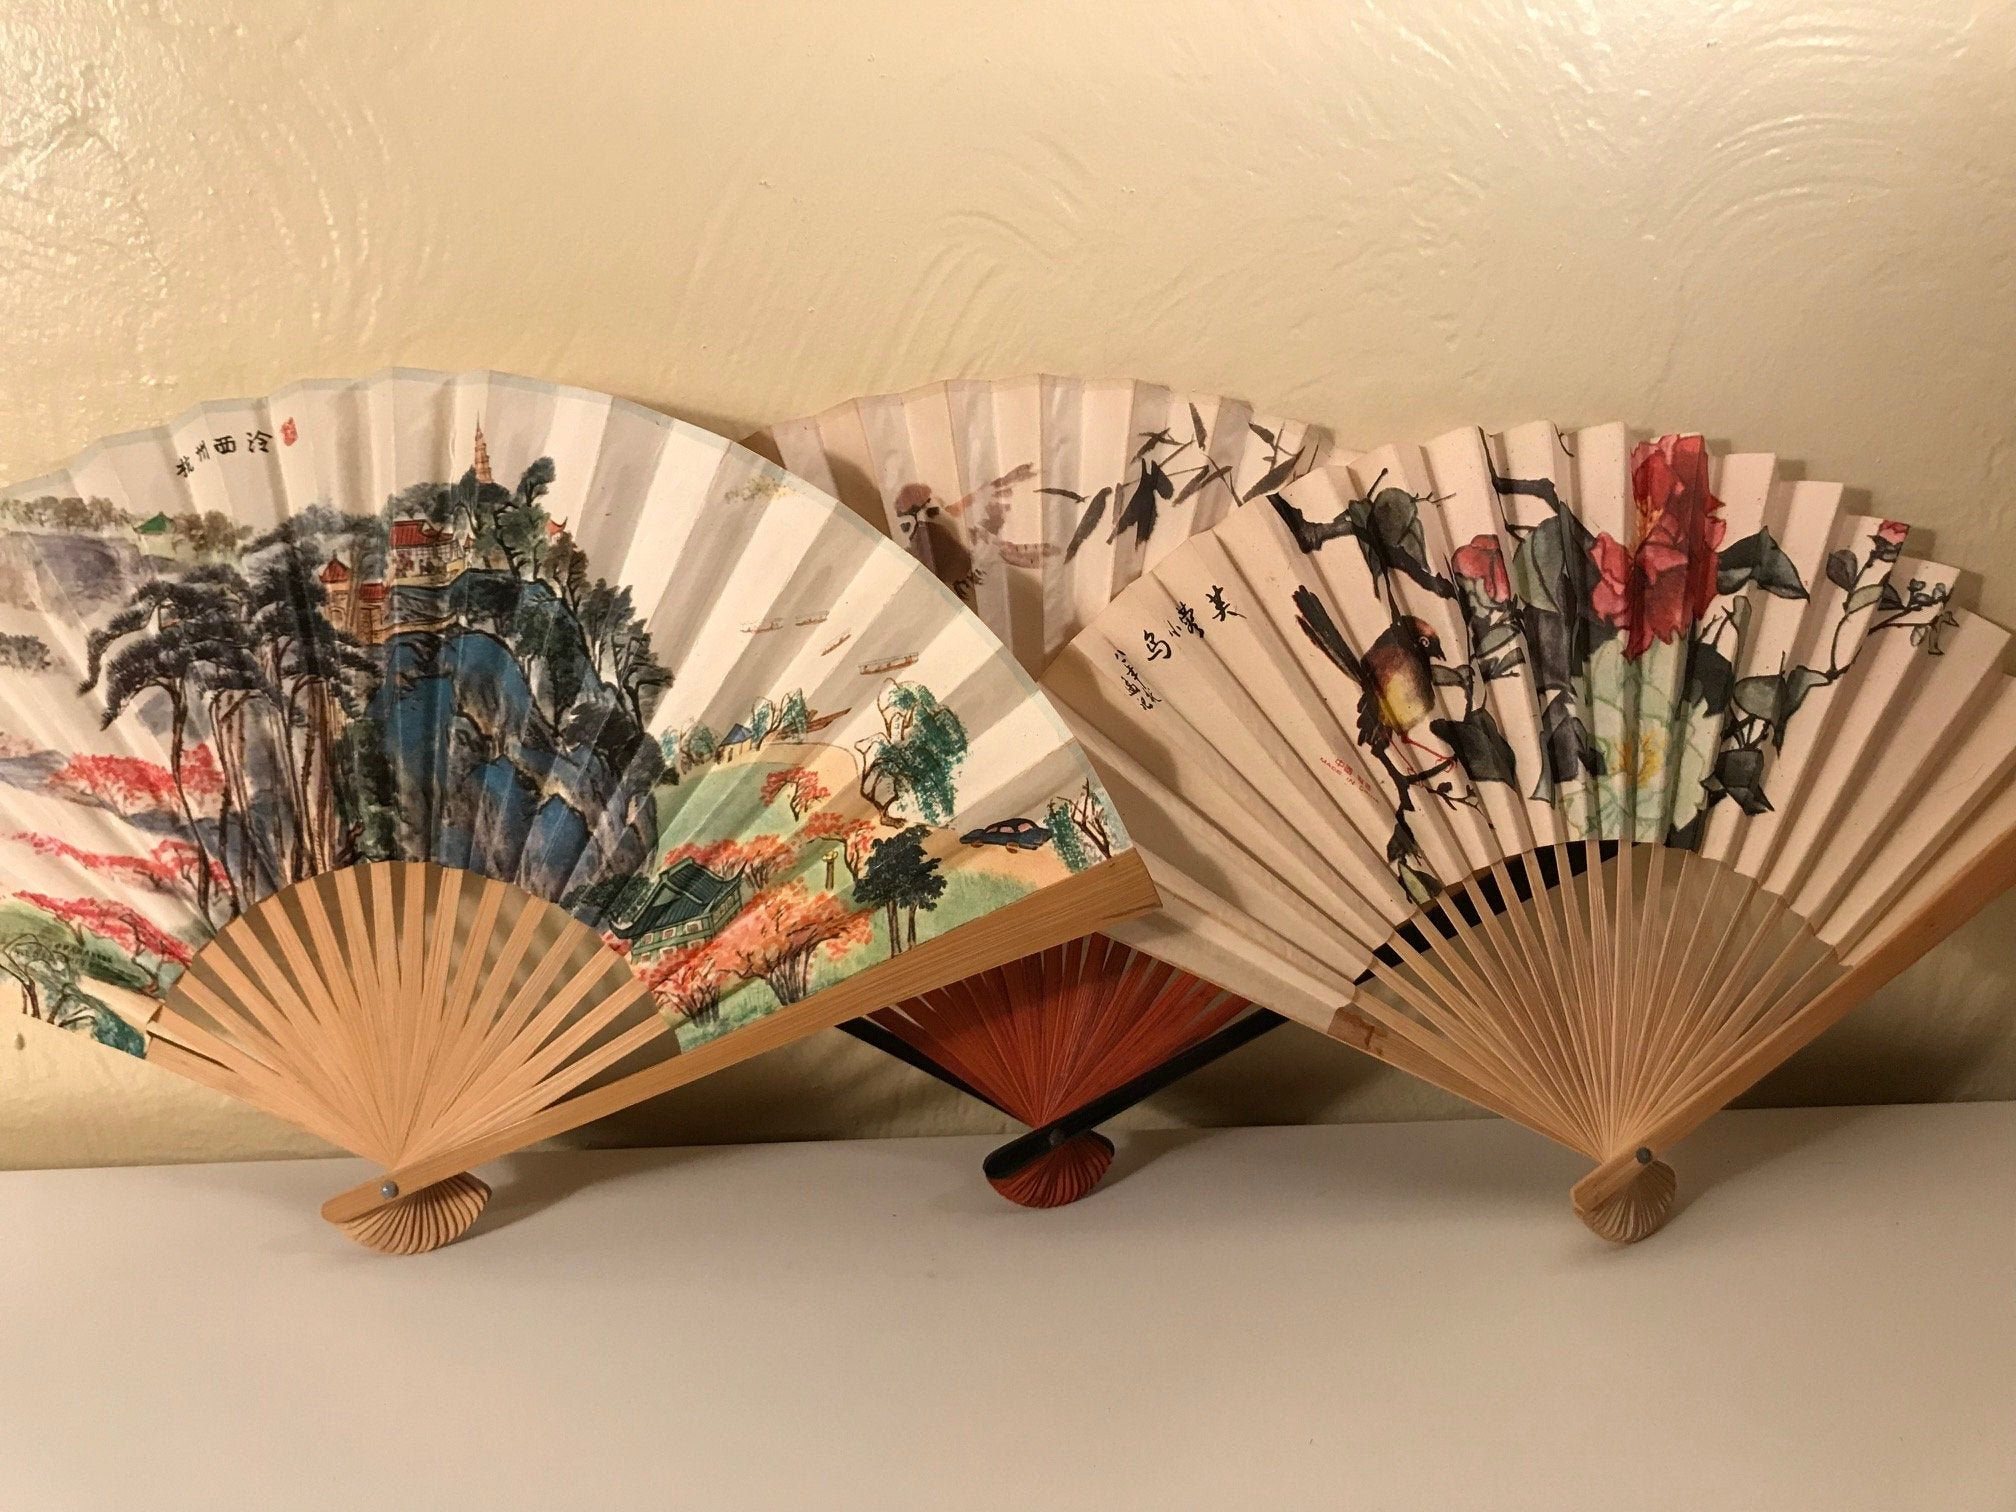 3 Asian Wood Folding Fans Decorative Ornate Hand Held Paper Fans Vintage Chinese Home Decor Beautiful Far East Collectible Paper Fans Chinese Wall Art Decor